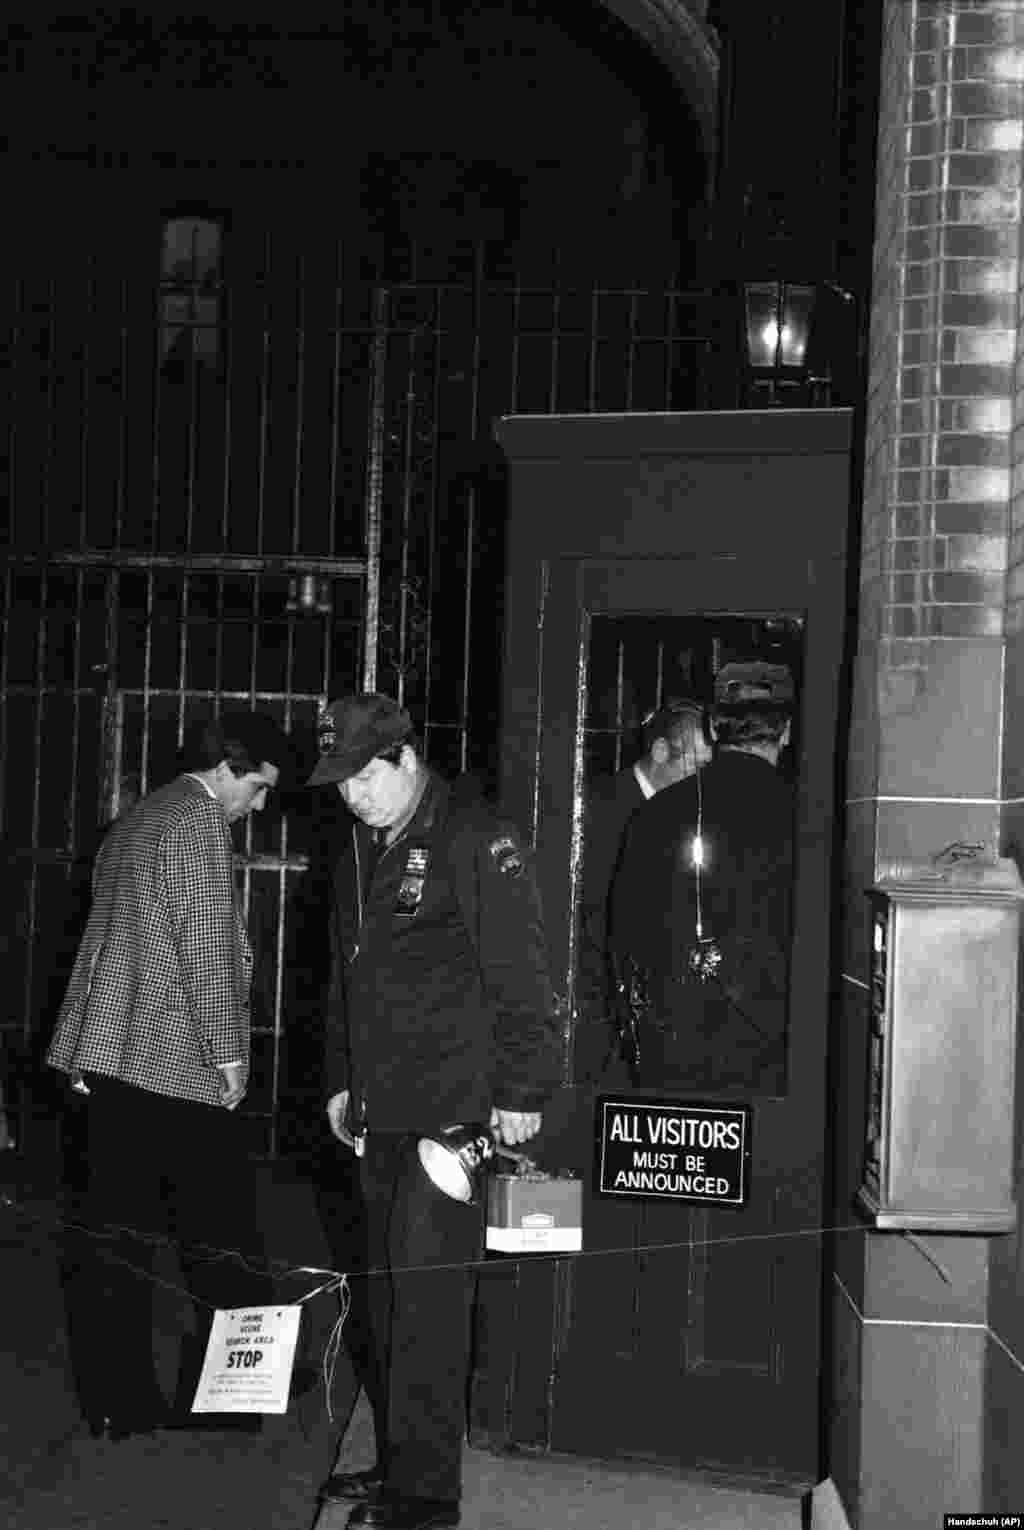 Police examine entrance alcove to the Dakota Apartment Building in New York, Monday, Dec. 8, 1980 after John Lennon was shot and killed as he returned home to the building.Bullet holes can be seen in the glass in the door.